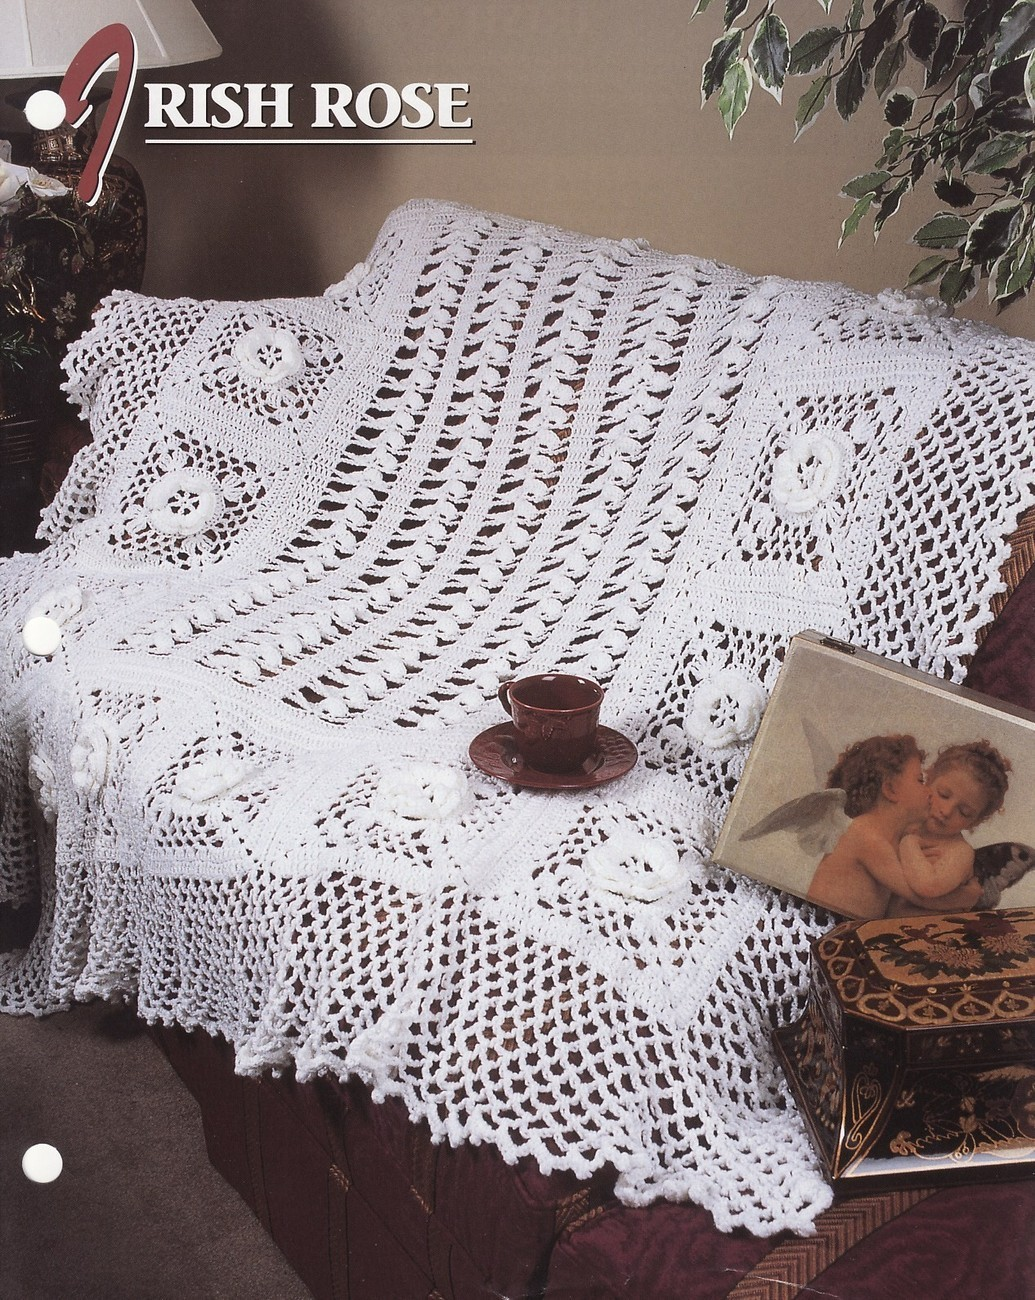 Easy Crochet Afghan Patterns For Beginners Free : AFGHAN CROCHET PATTERN ROSE Patterns